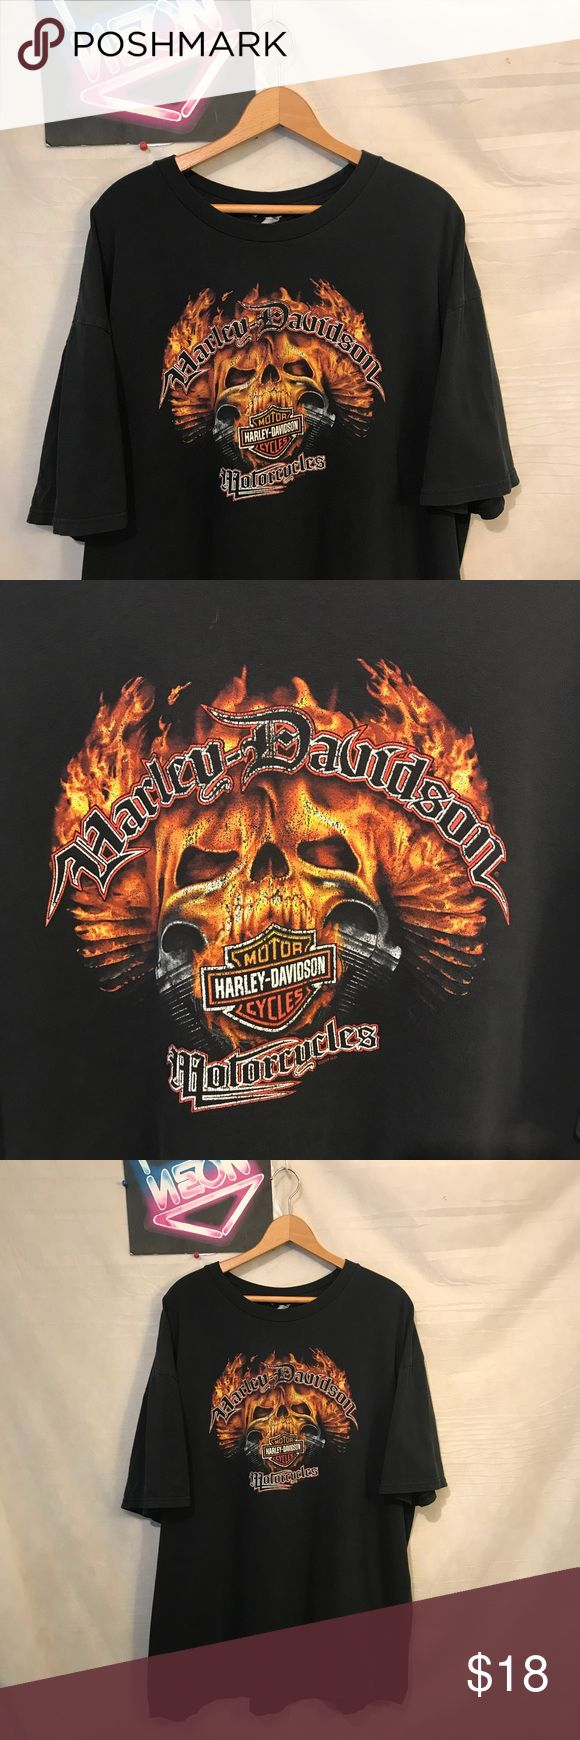 """Harley-Davidson Men Dist Black shirt Sz XL A1317 Harley-Davidson Men's Distressed Sauk City Black T-shirt Sz XL, pit to pit - 24"""", shoulder to hem - 30"""", distressed on graphic and color fading, no holes or rips ships from smoke free facility, thank you Harley-Davidson Shirts Tees - Short Sleeve"""